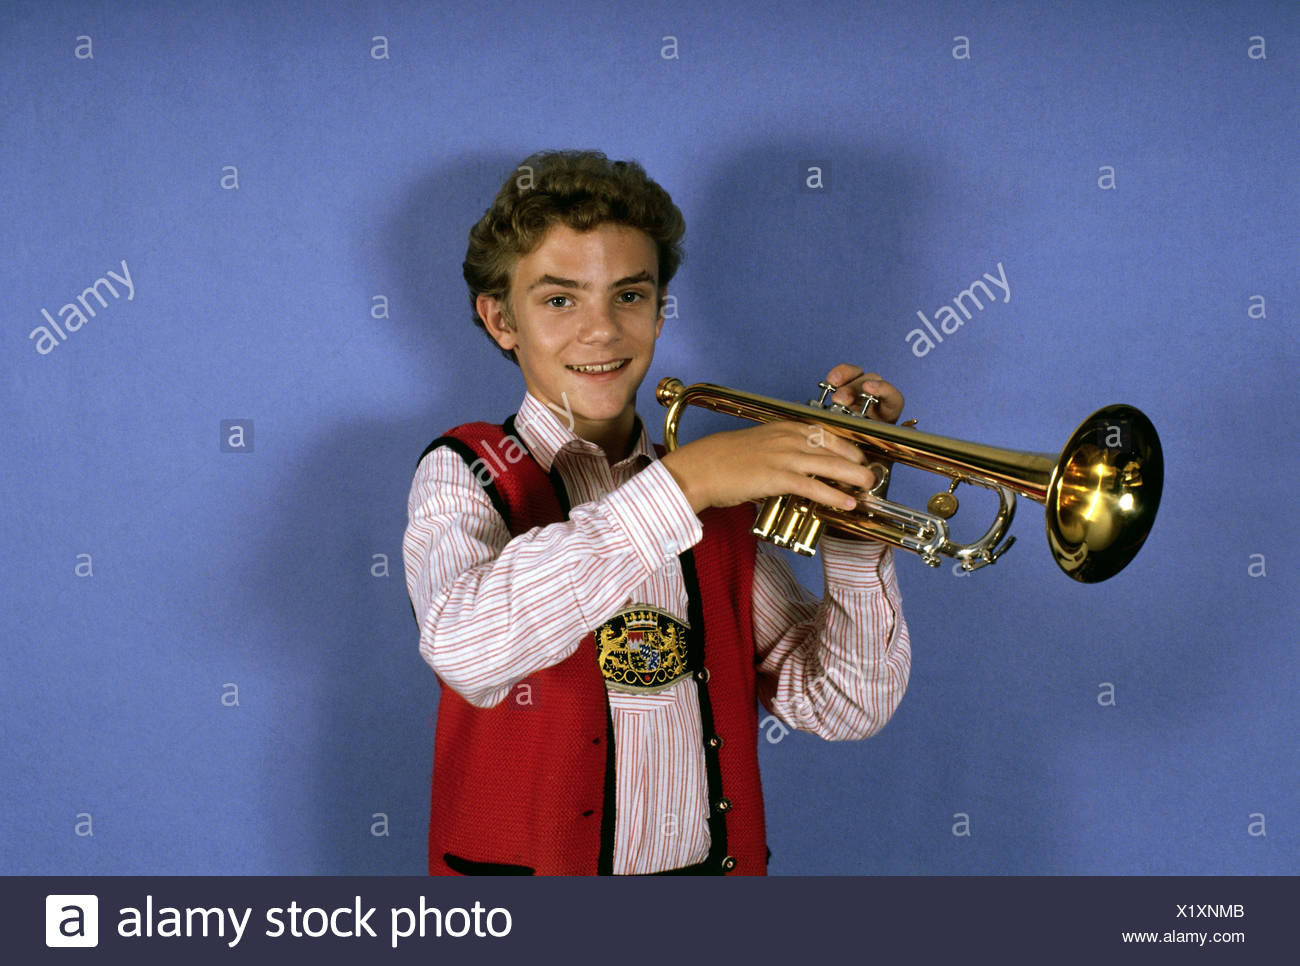 Mross Stefan, * 26.11.1975, German musician (rumpeter), winner of the Folk Music Grand Prix, 1989, , Additional-Rights-Clearances-NA - Stock Image